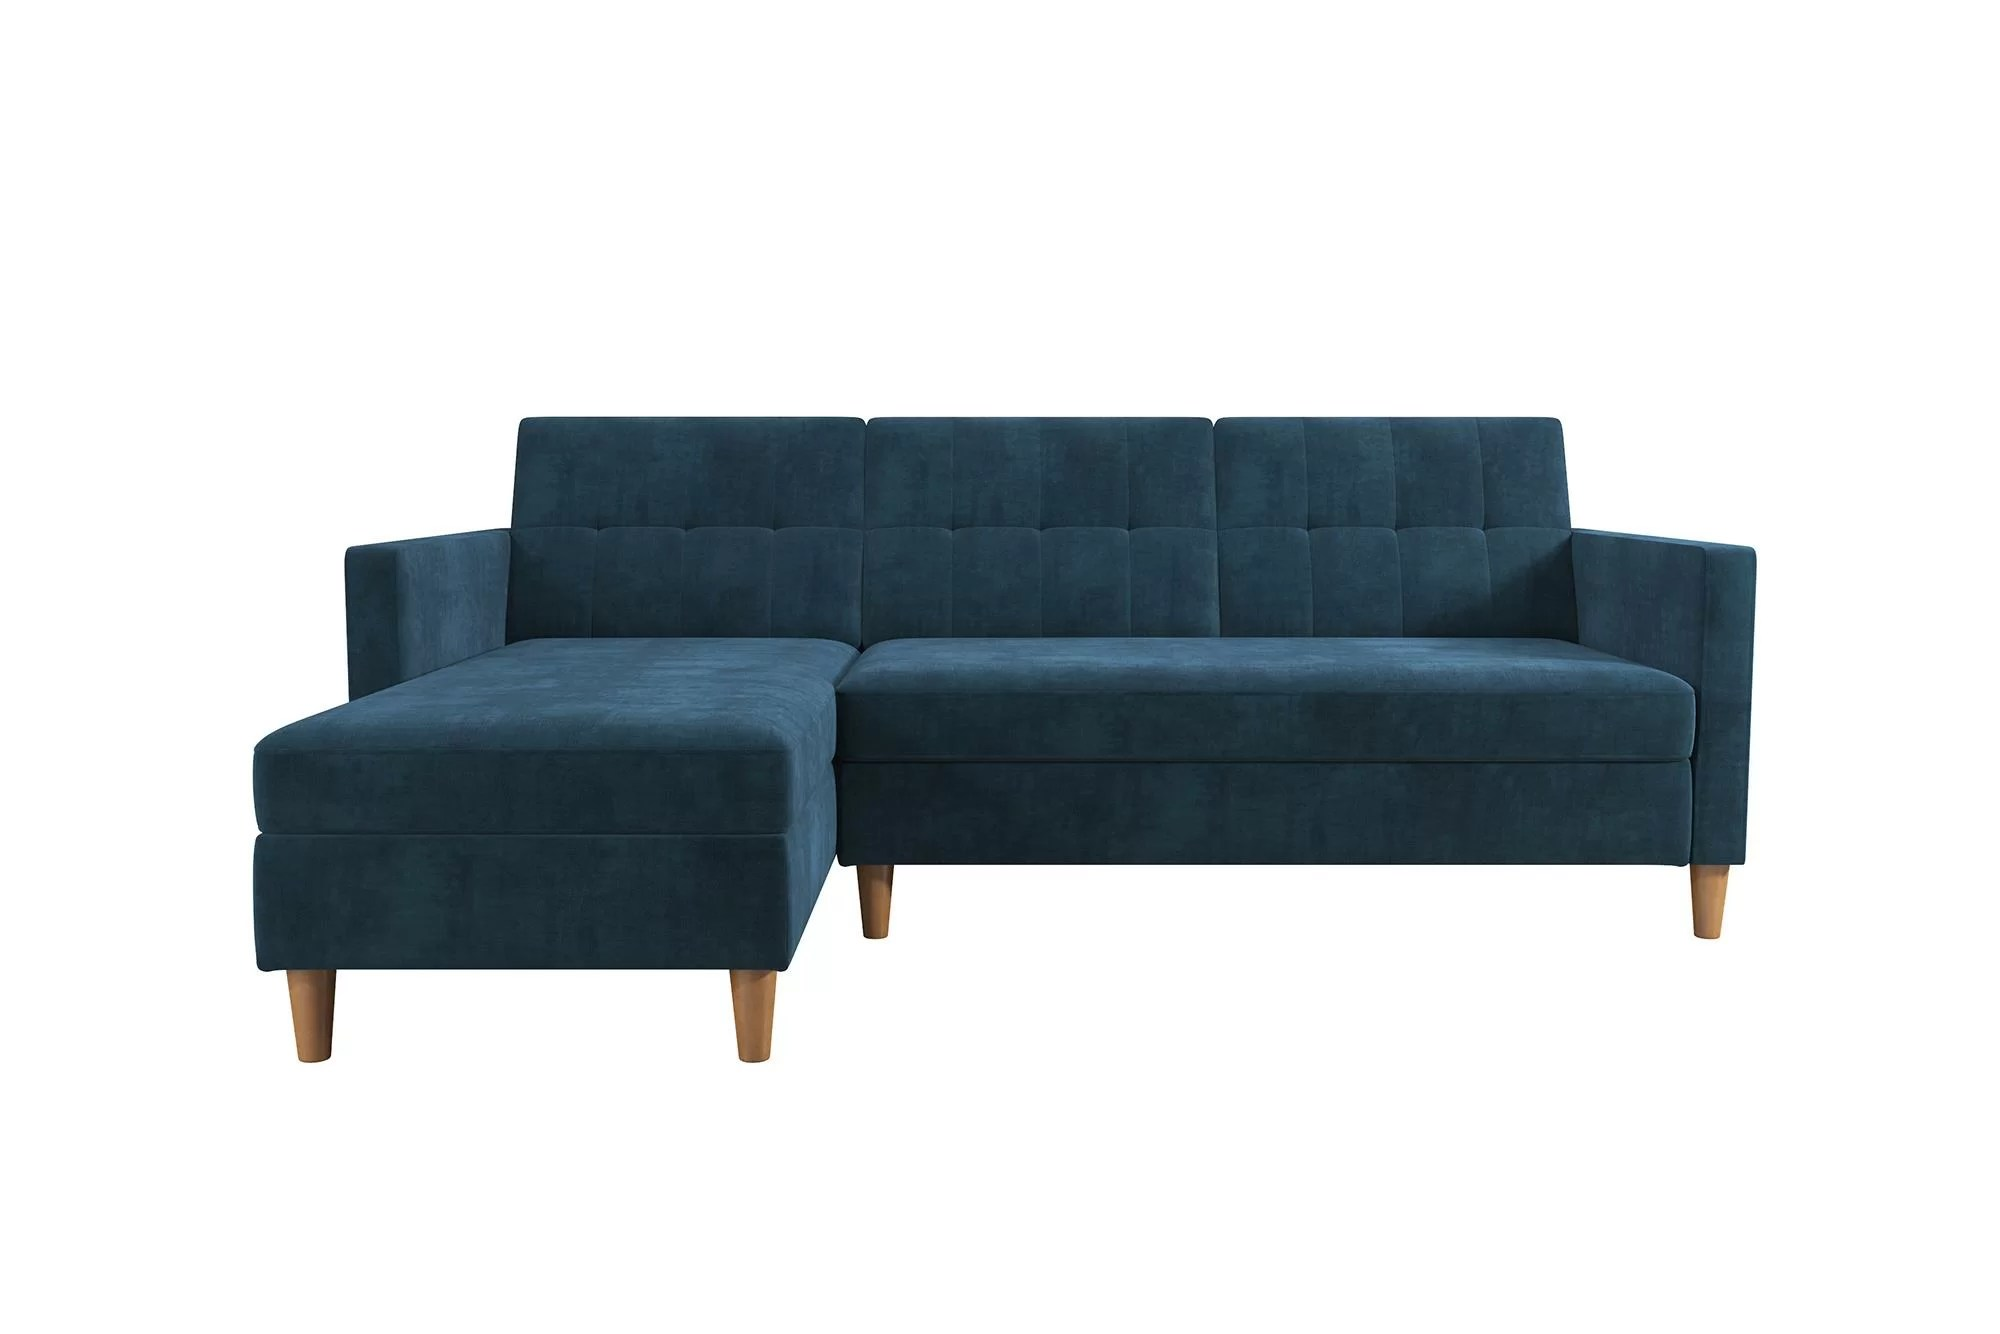 Next Sofa Measurements Modern Sectional Sofas Allmodern